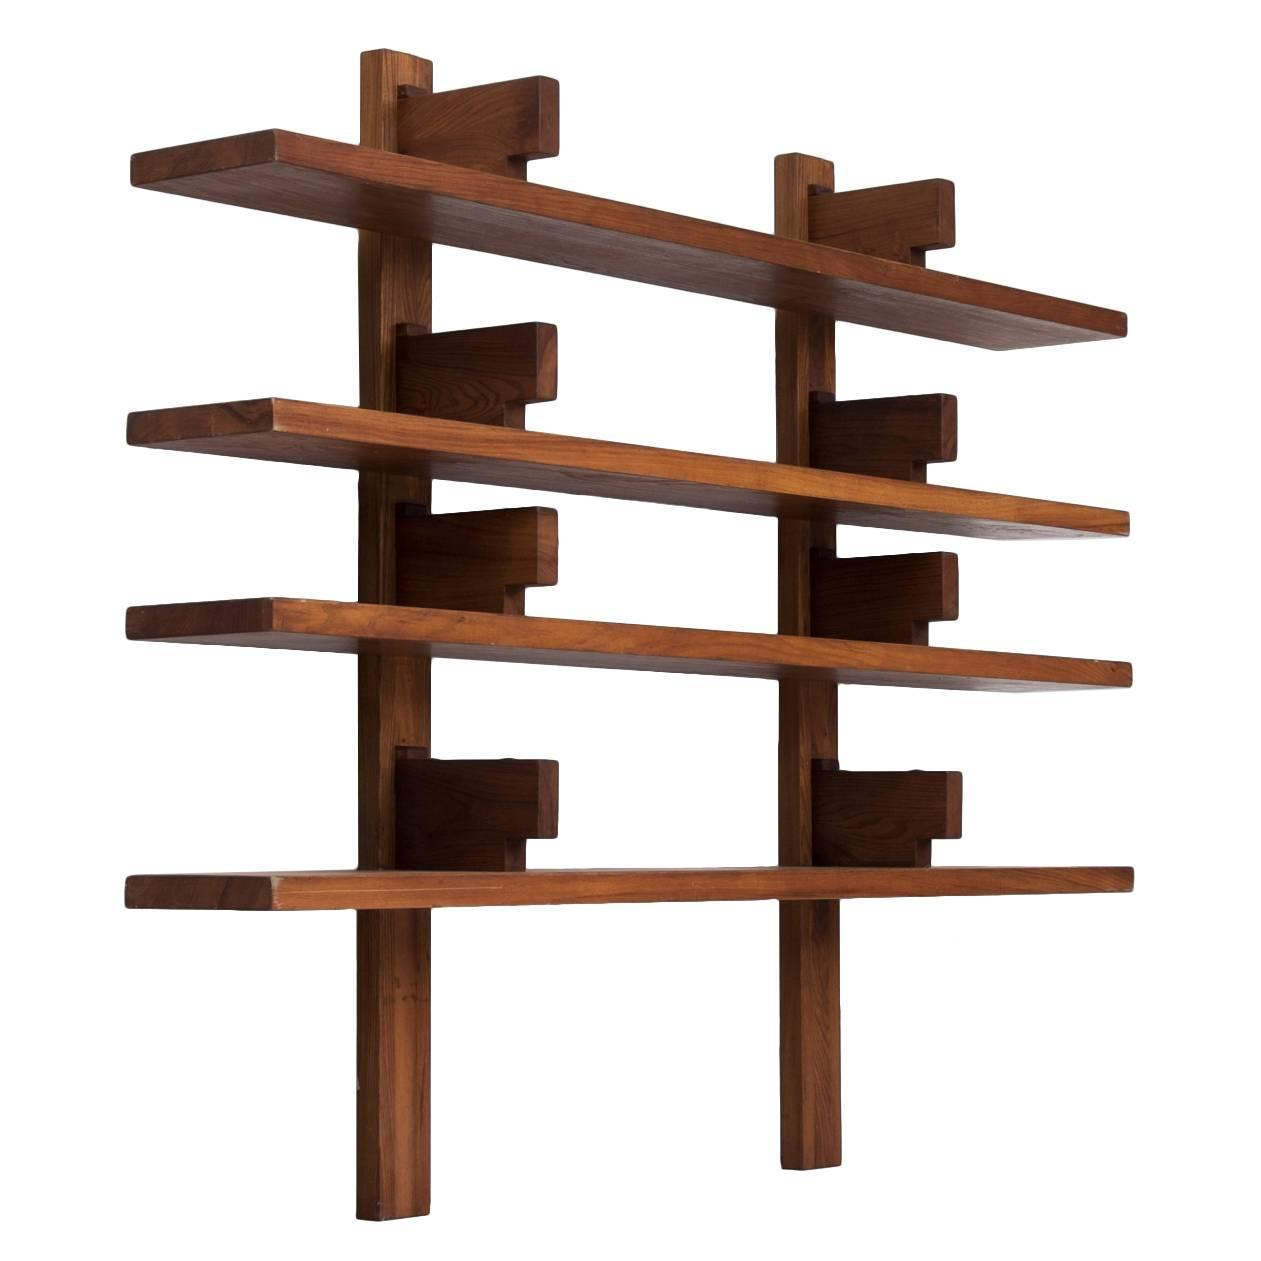 Pierre chapo 39 biblioth que 39 wall mounted bookcase for sale at 1stdibs - Bibliotheque 6 cases ...